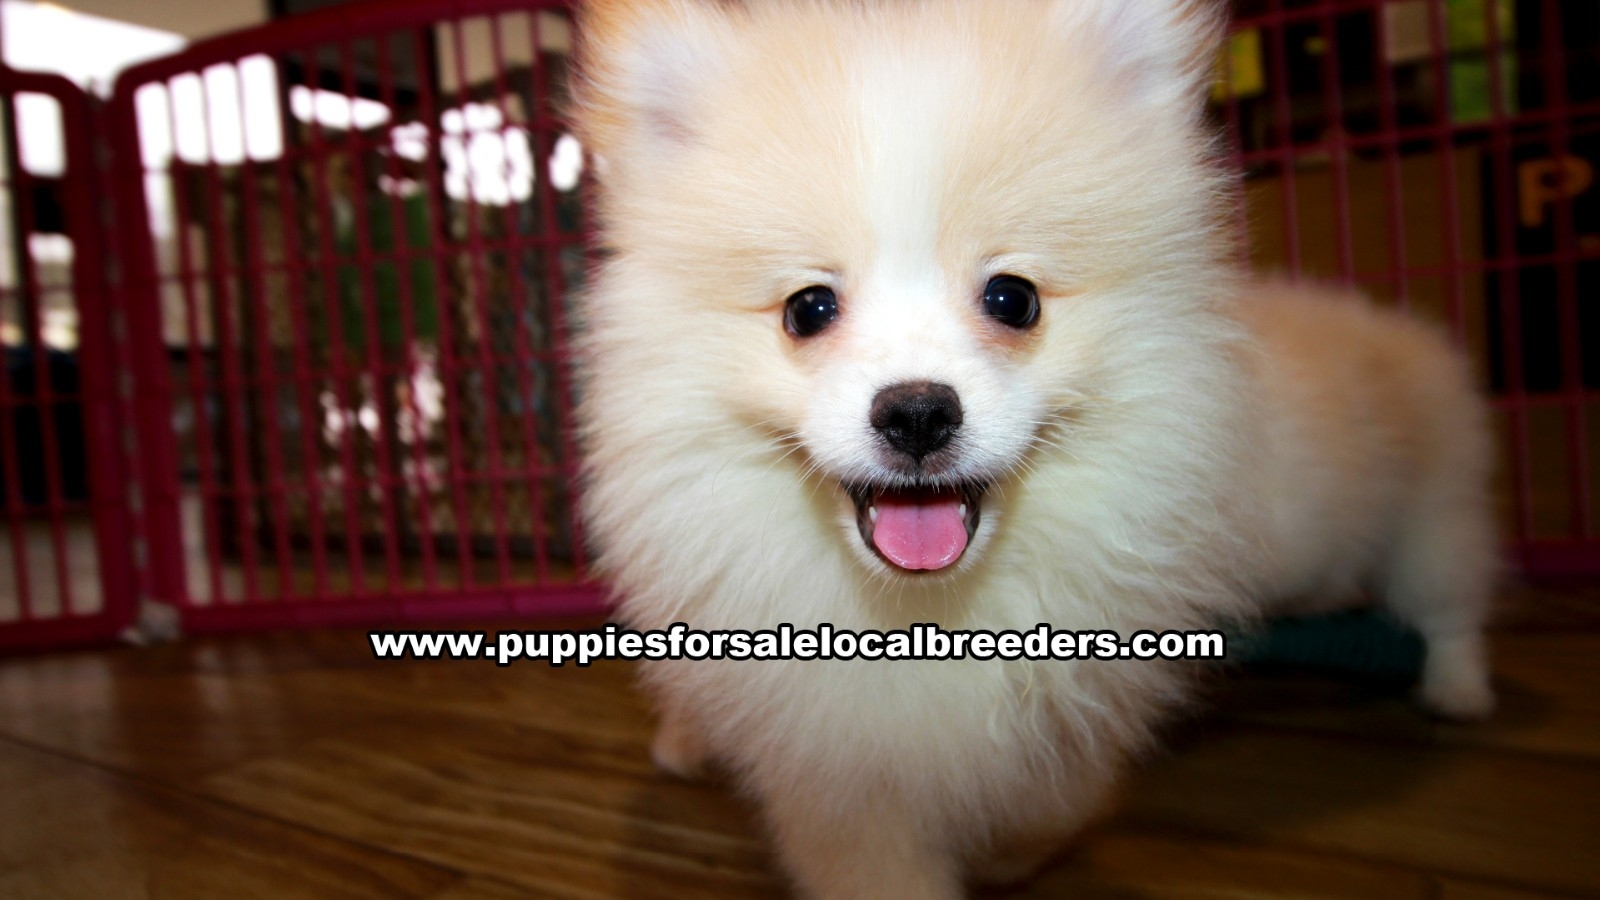 Cream Pomeranian, Puppies For Sale In Georgia, Local Breeders, Near Atlanta, Ga